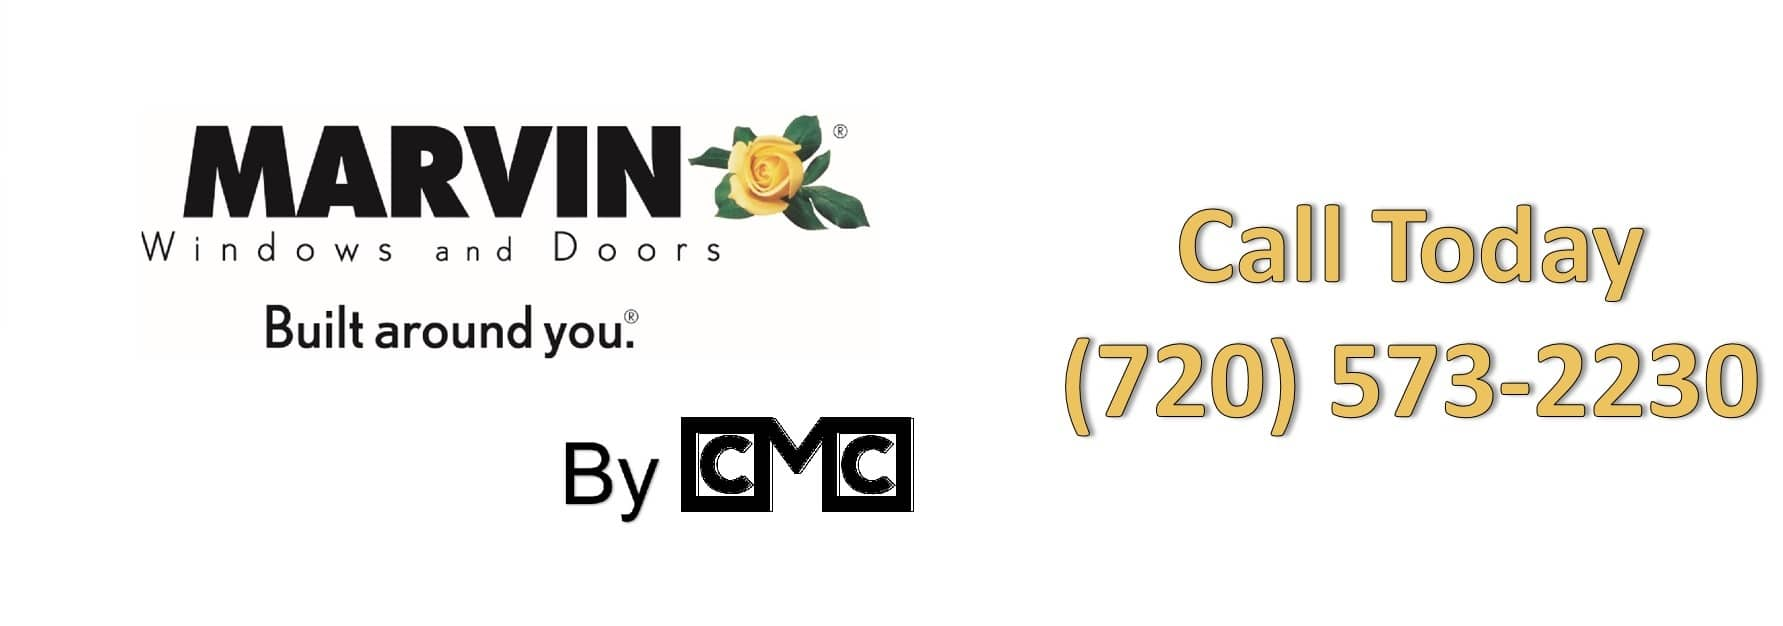 Marvin Windows and Doors by CMC Mobile Logo